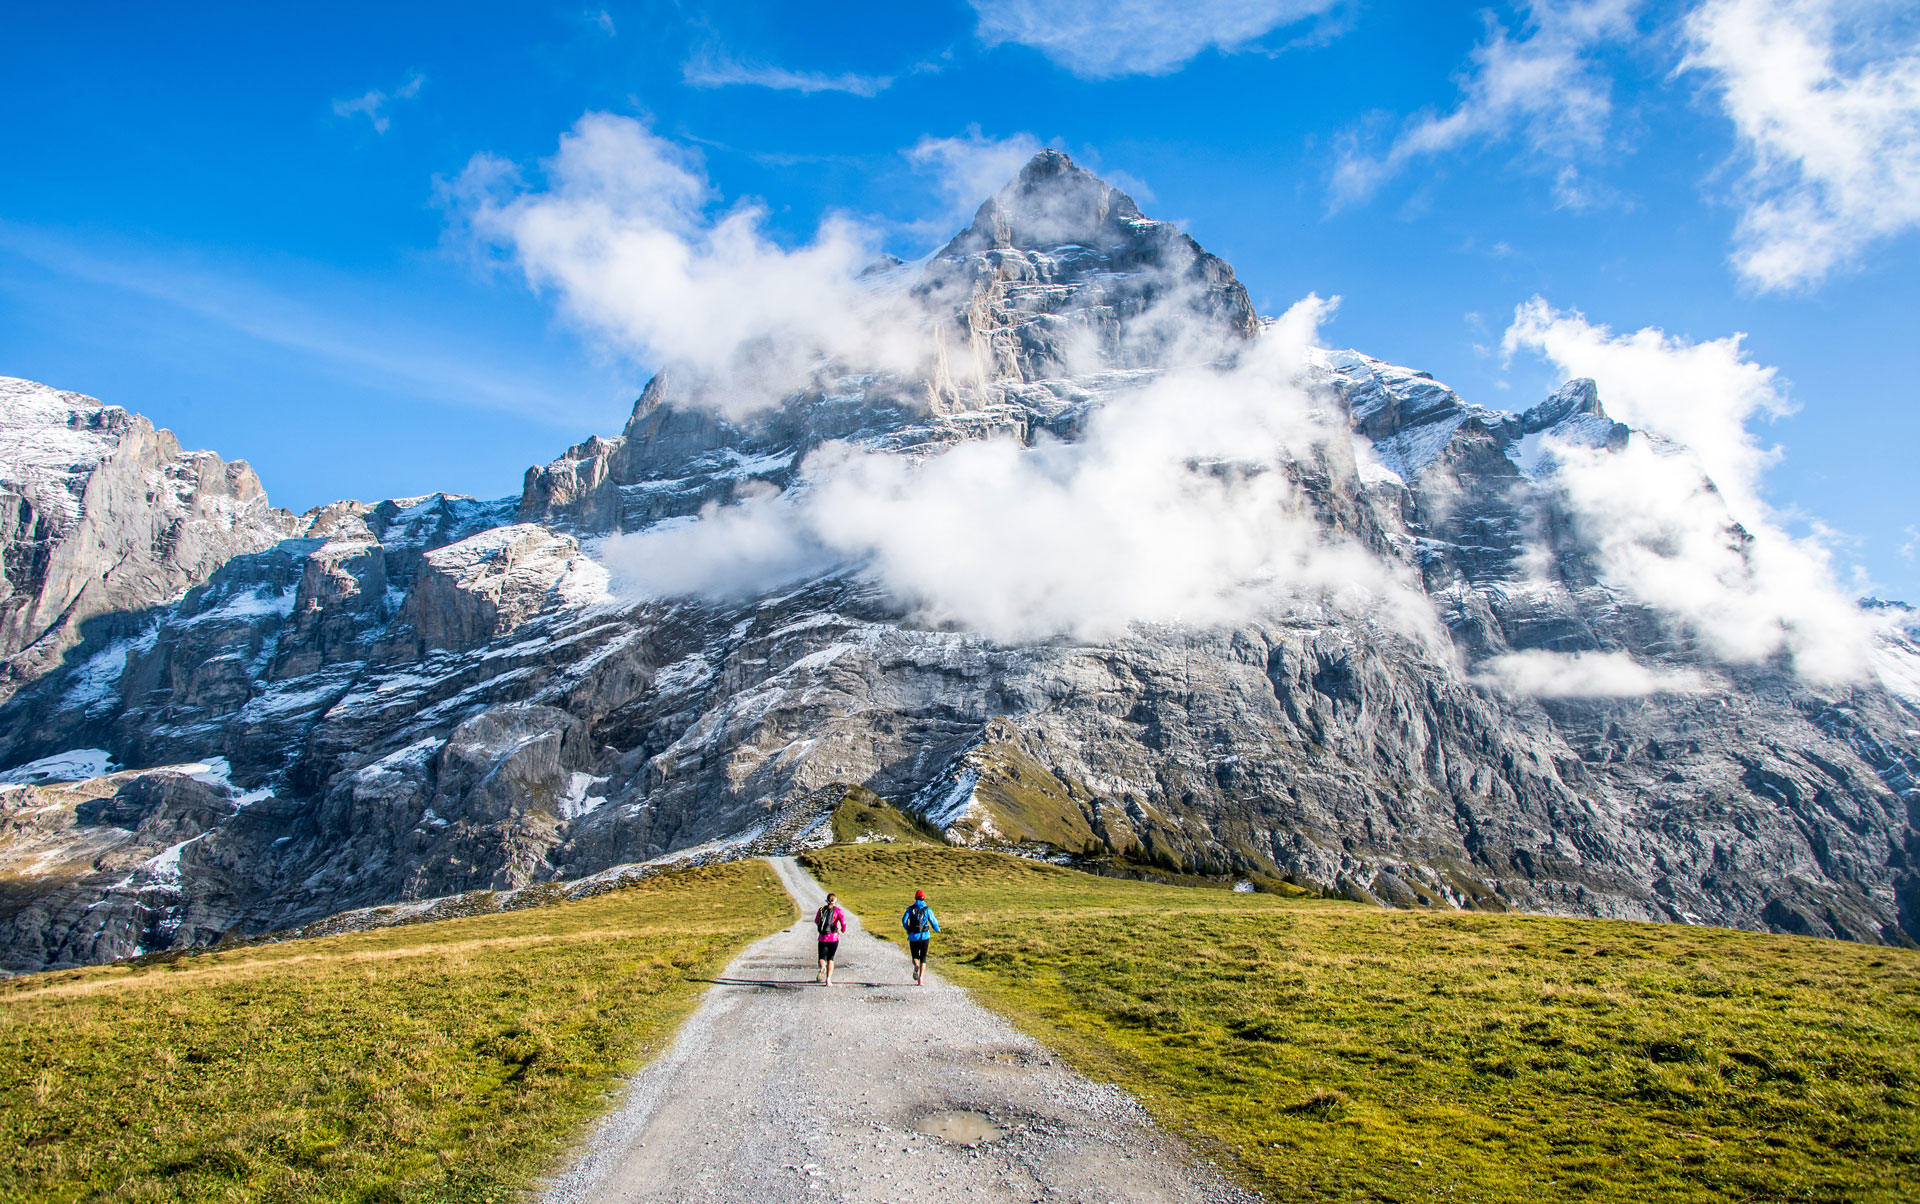 Hiking-in-Grindelwald-Switzerland.jpg